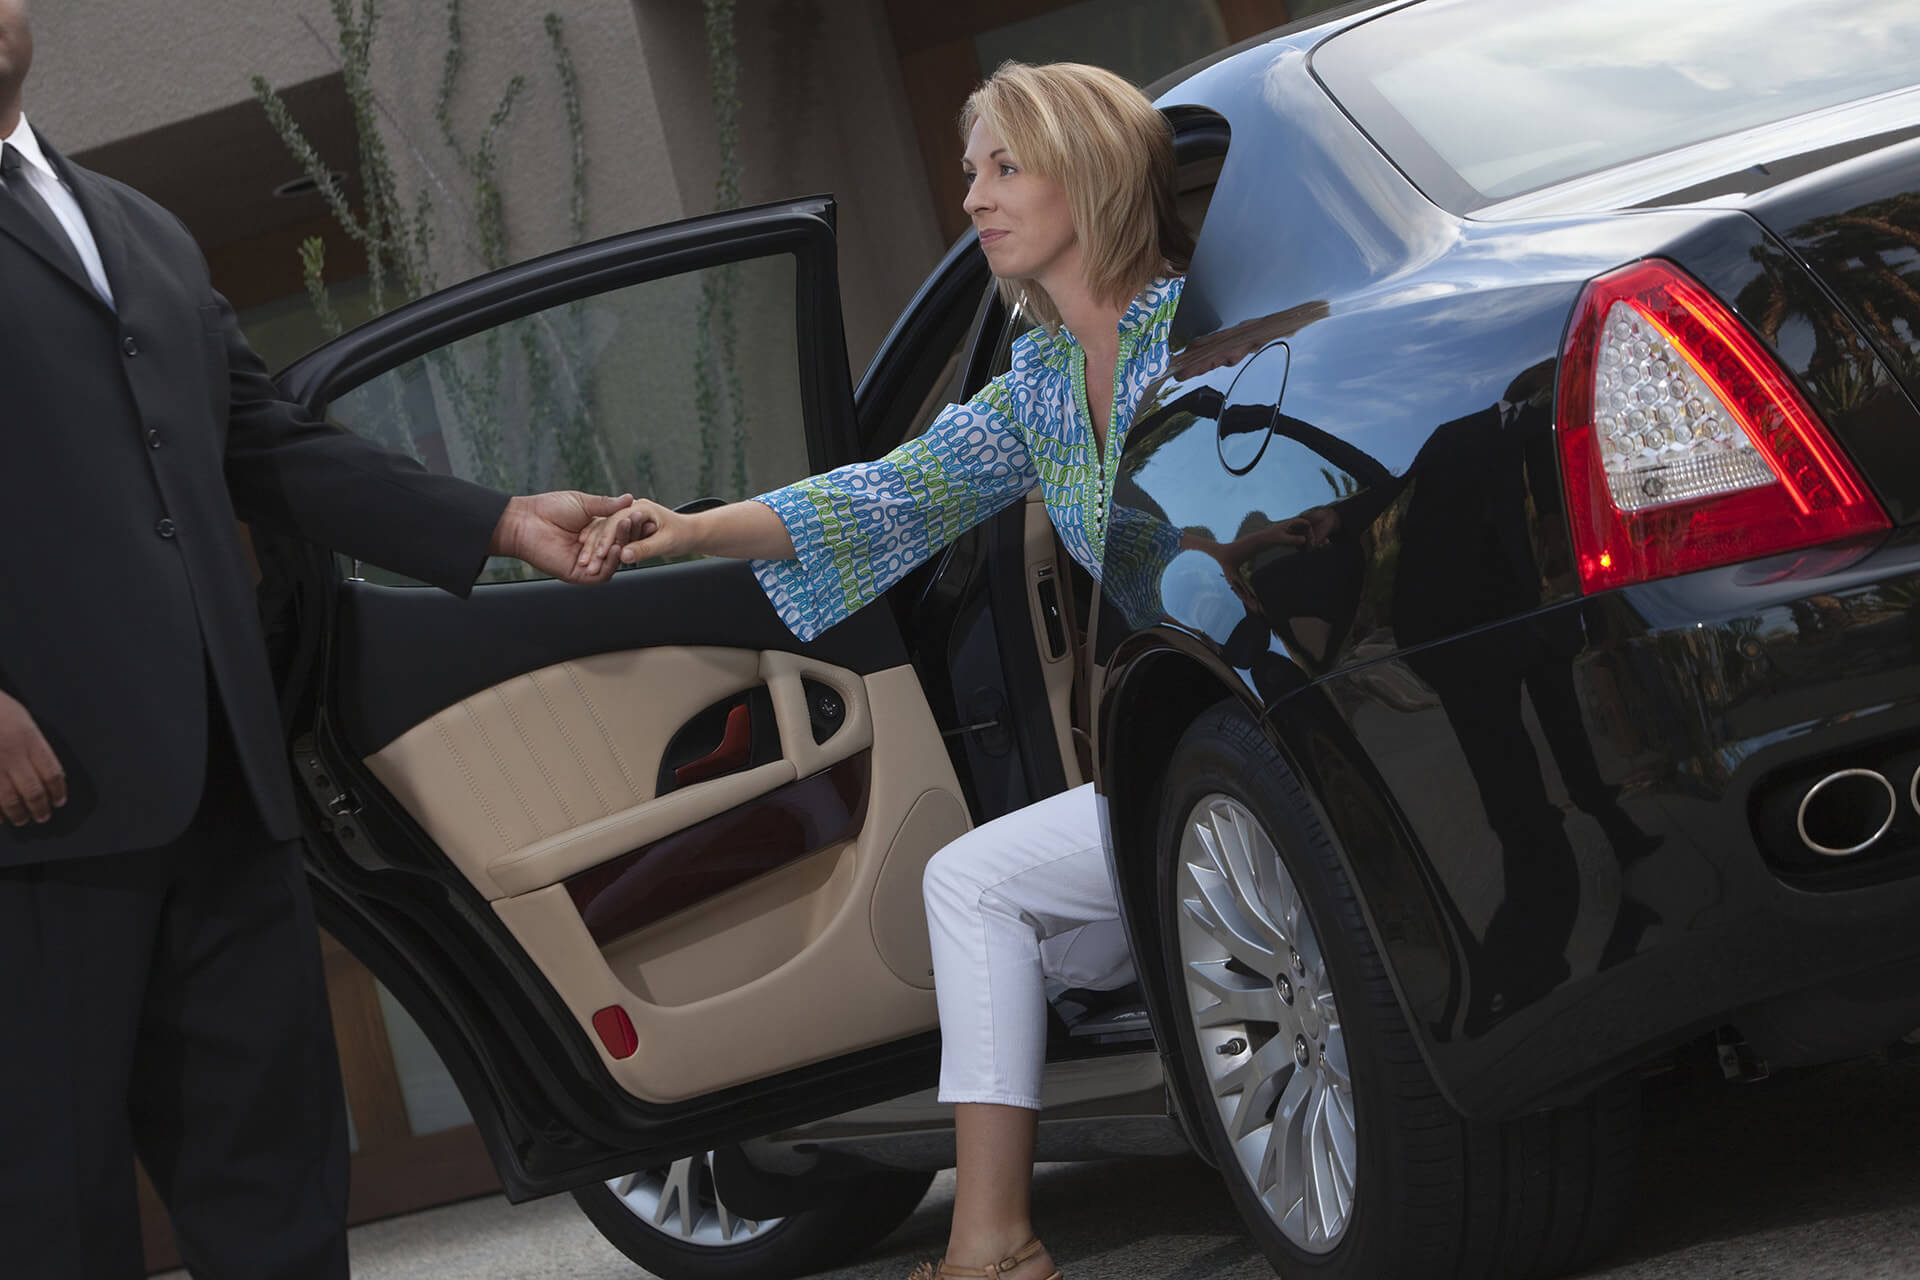 Top Trends in Luxury Chauffeur Service to Watch.